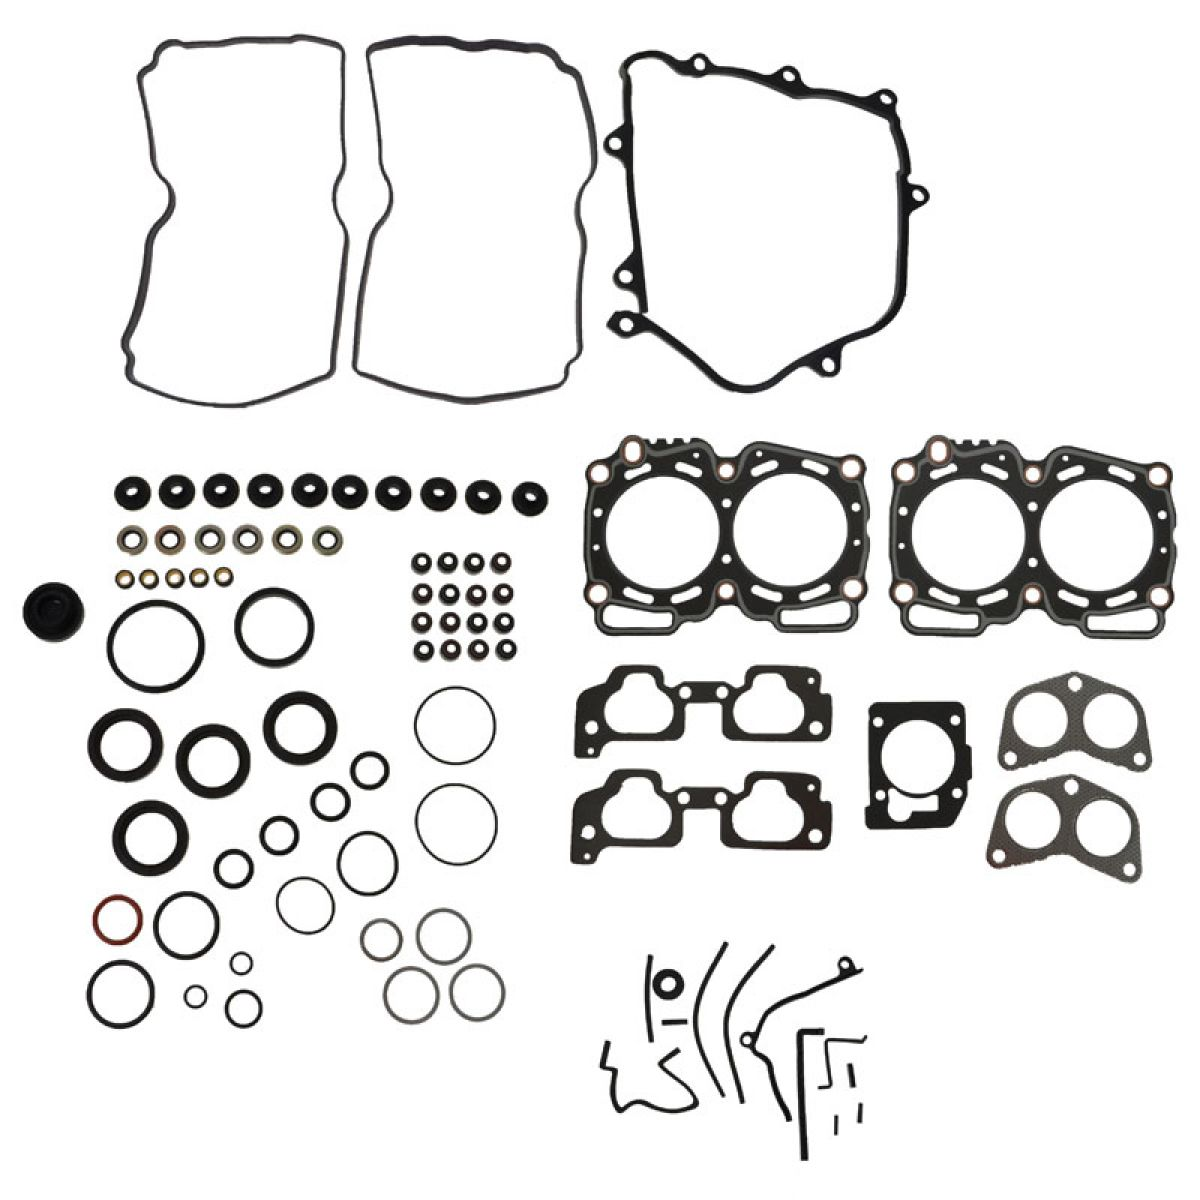 Engine Head Gasket Kit Set New For Baja Forester Impreza